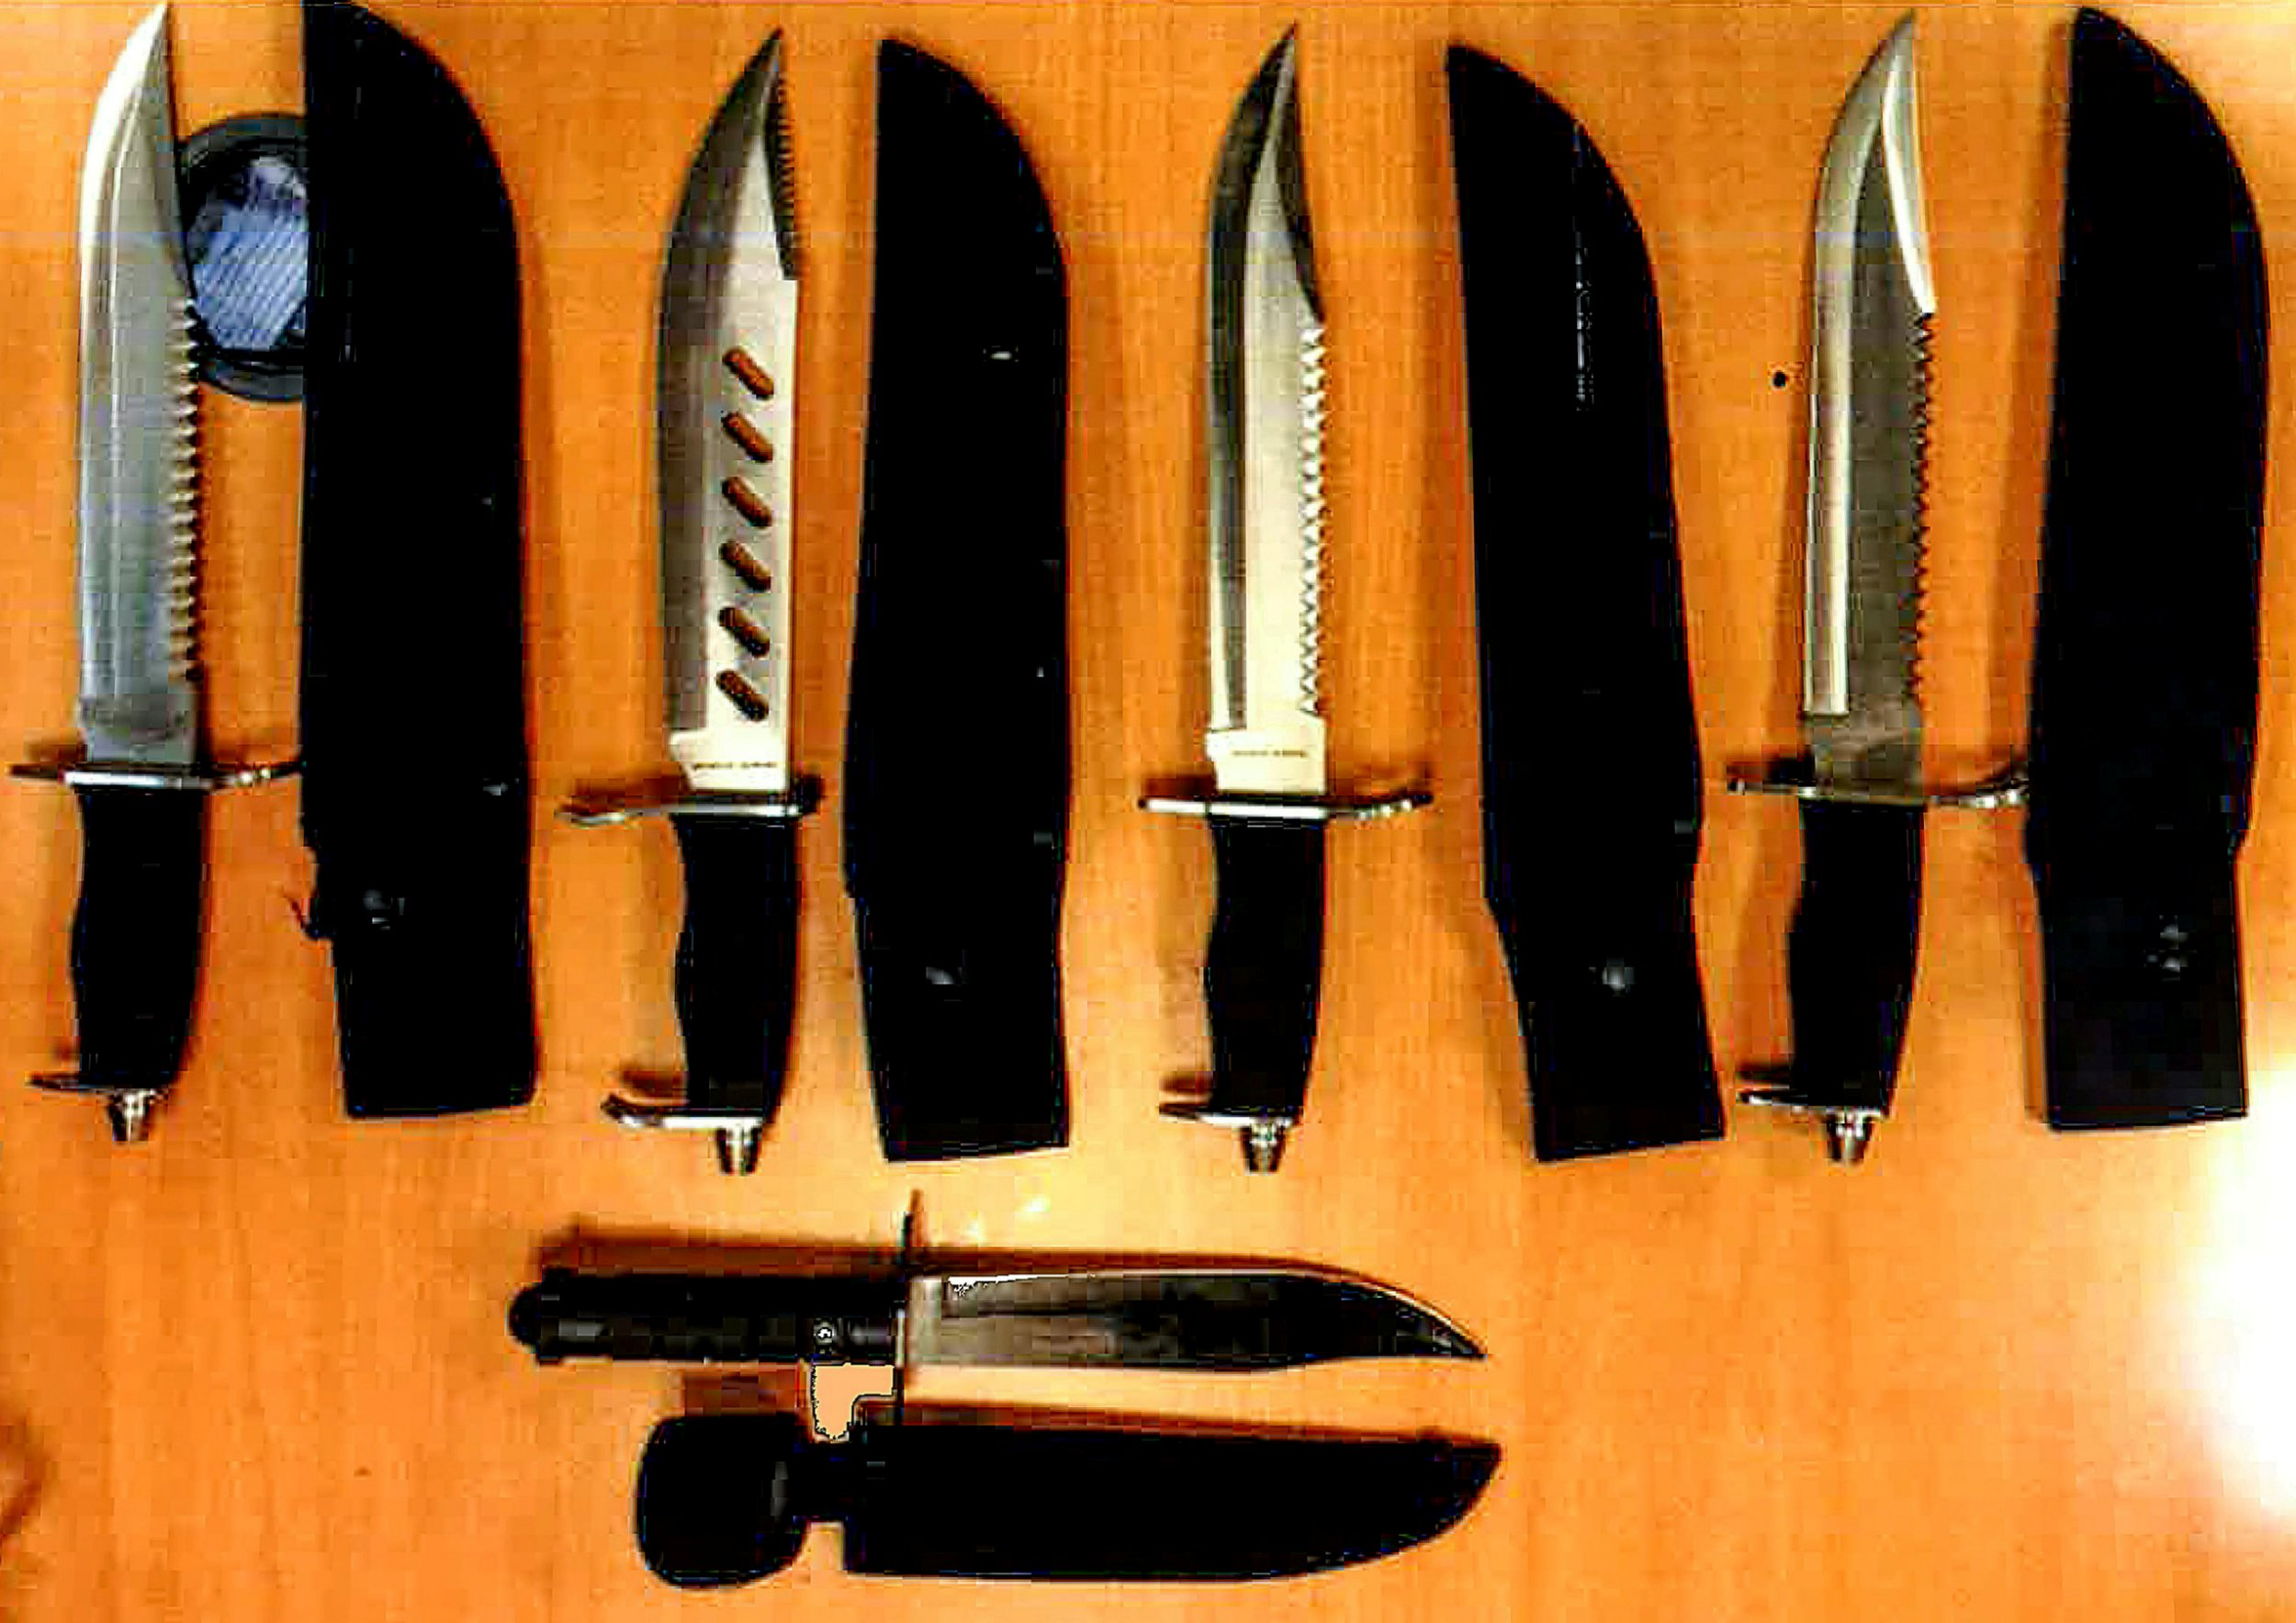 Almost 45,000 weapons seized as thugs try to smuggle guns and knives into court every day